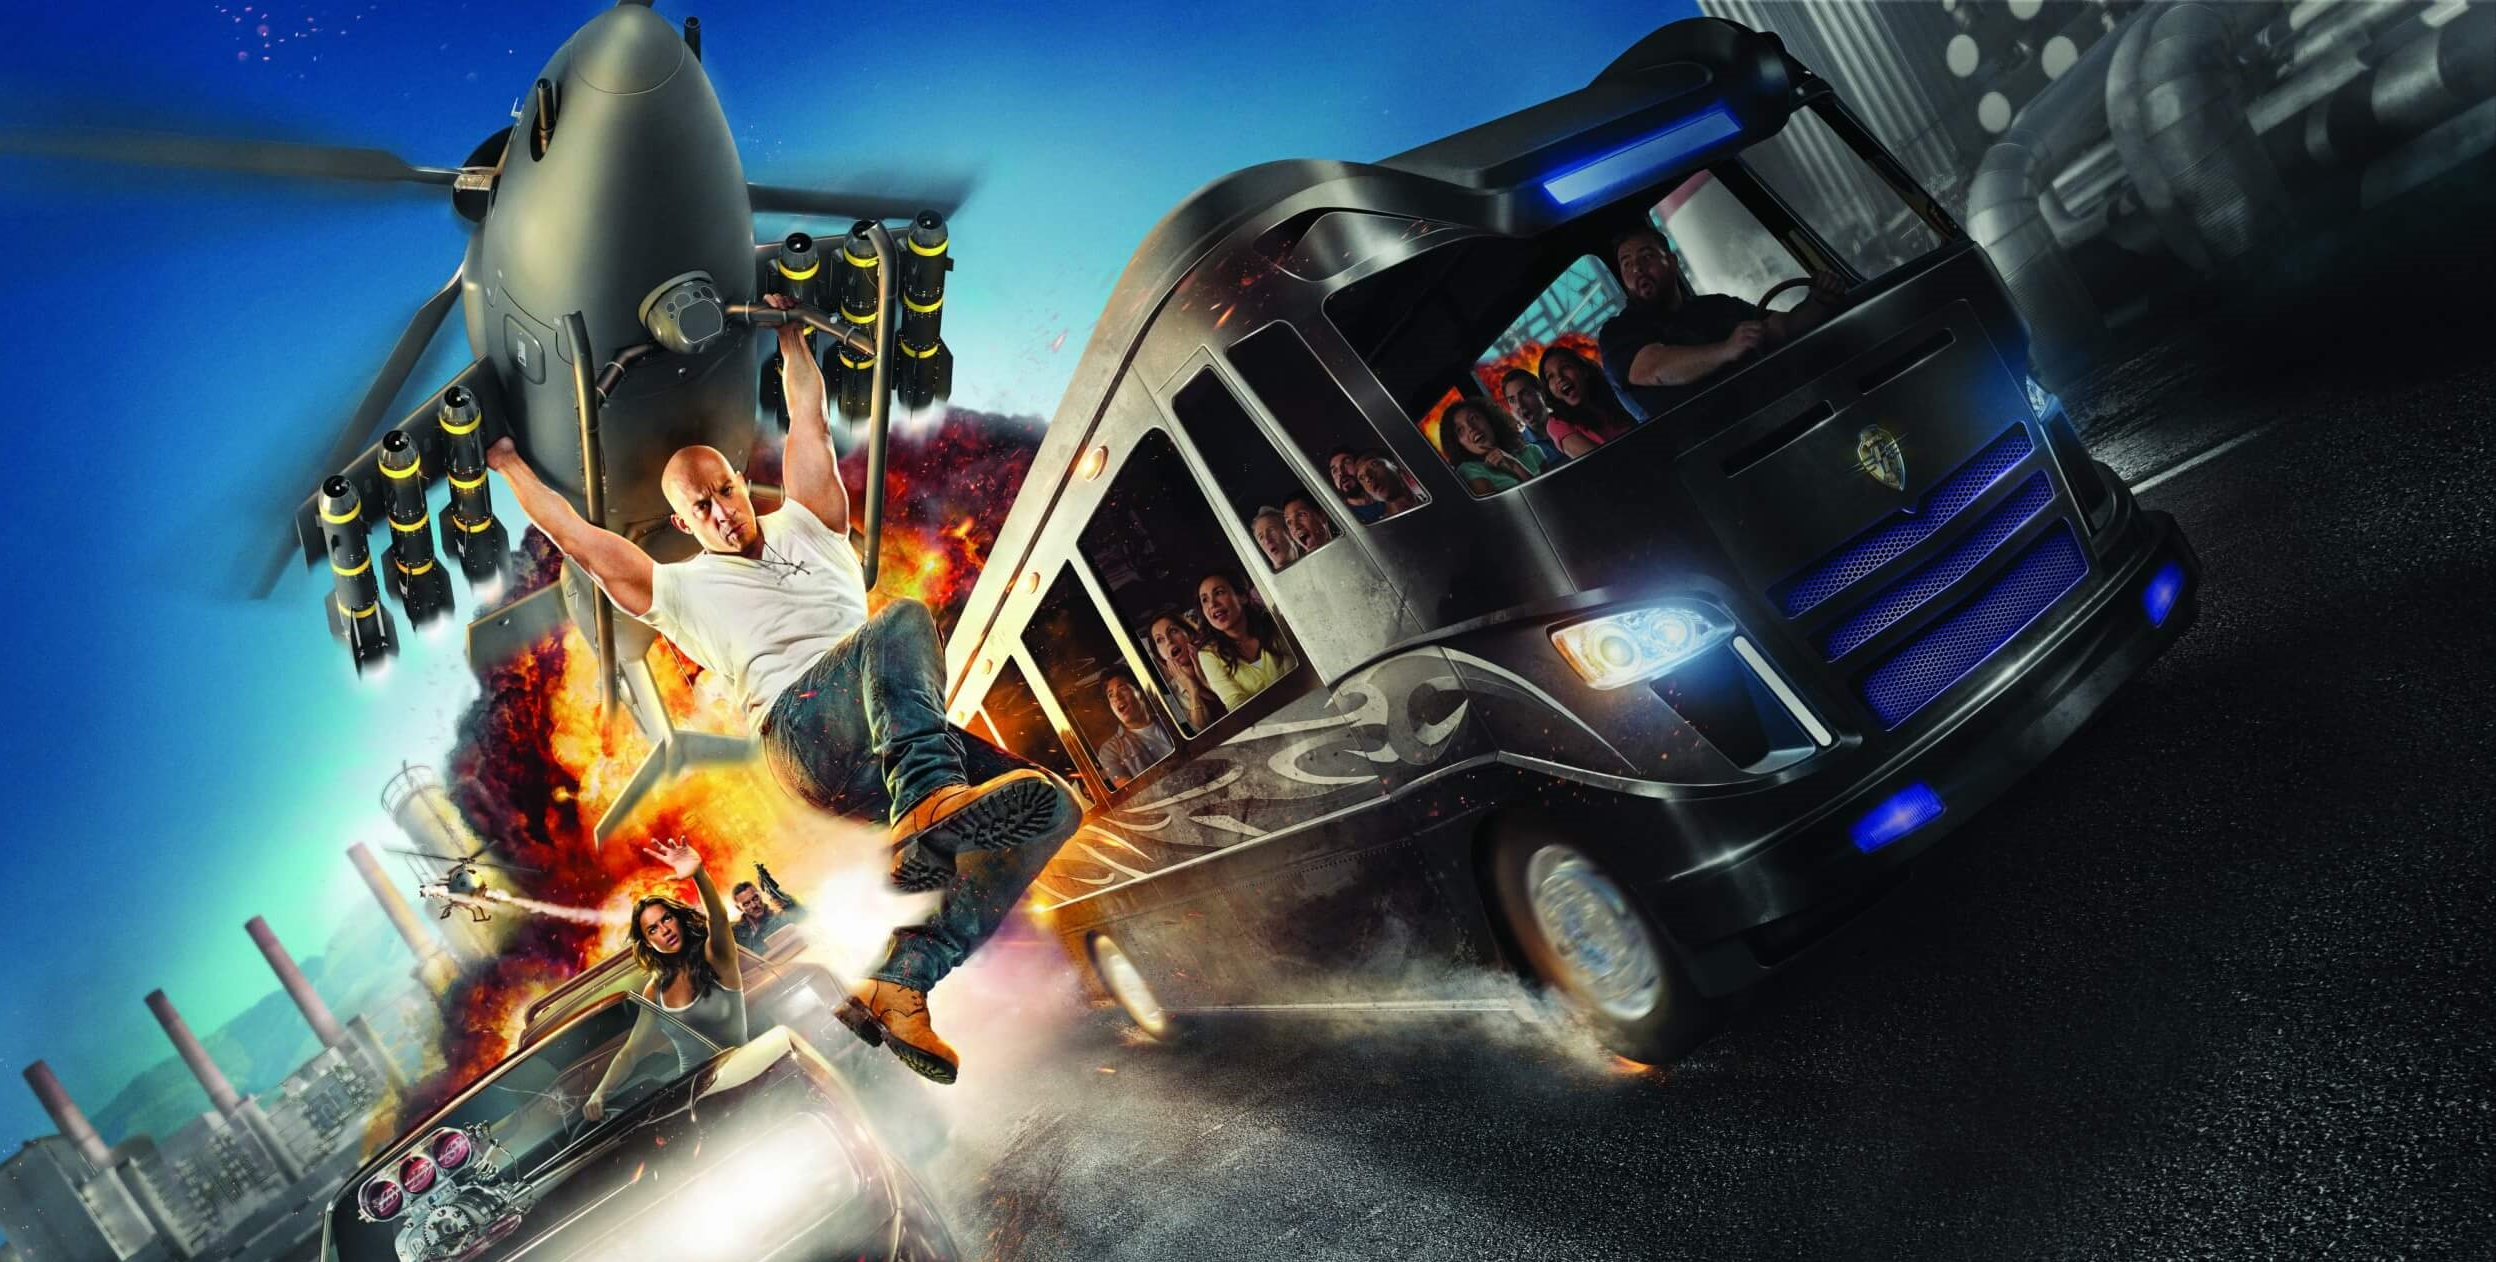 FAST AND FURIOUS AT UNIVERSAL ORLANDO